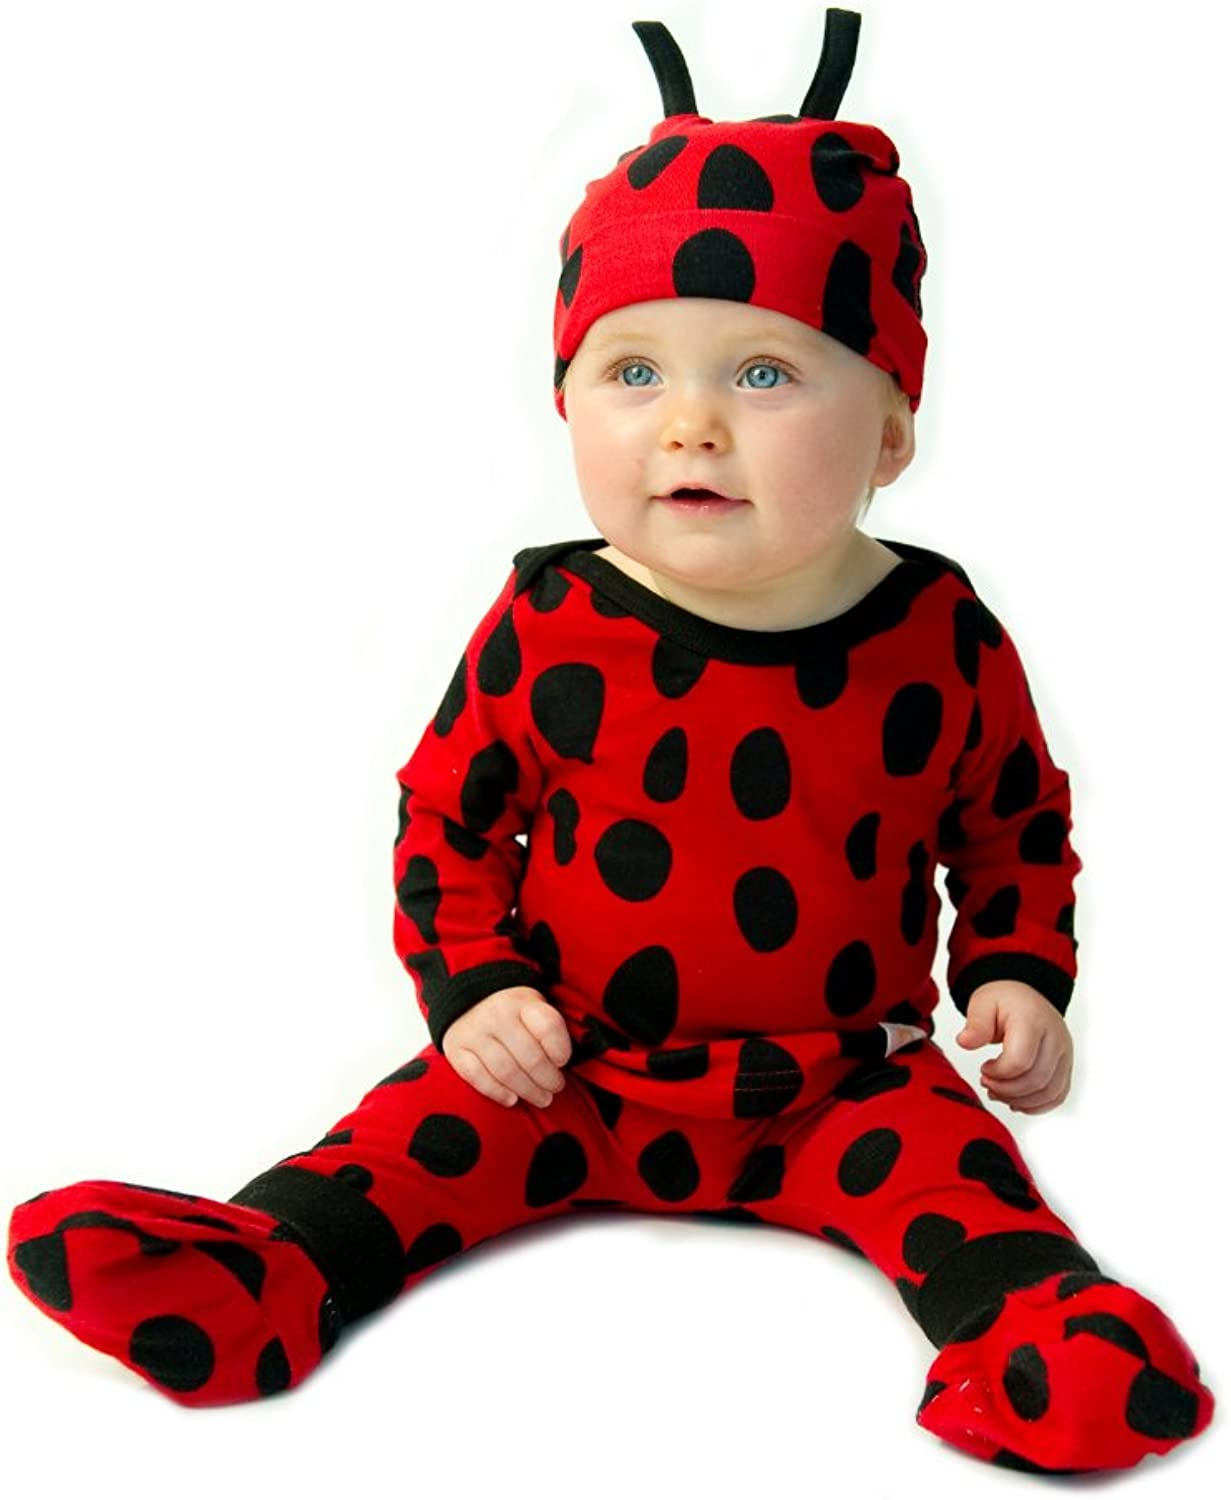 Noo Designs (gnu design) Animal Kohde set 4-piece Ladybug Ladybug for 3-6 months